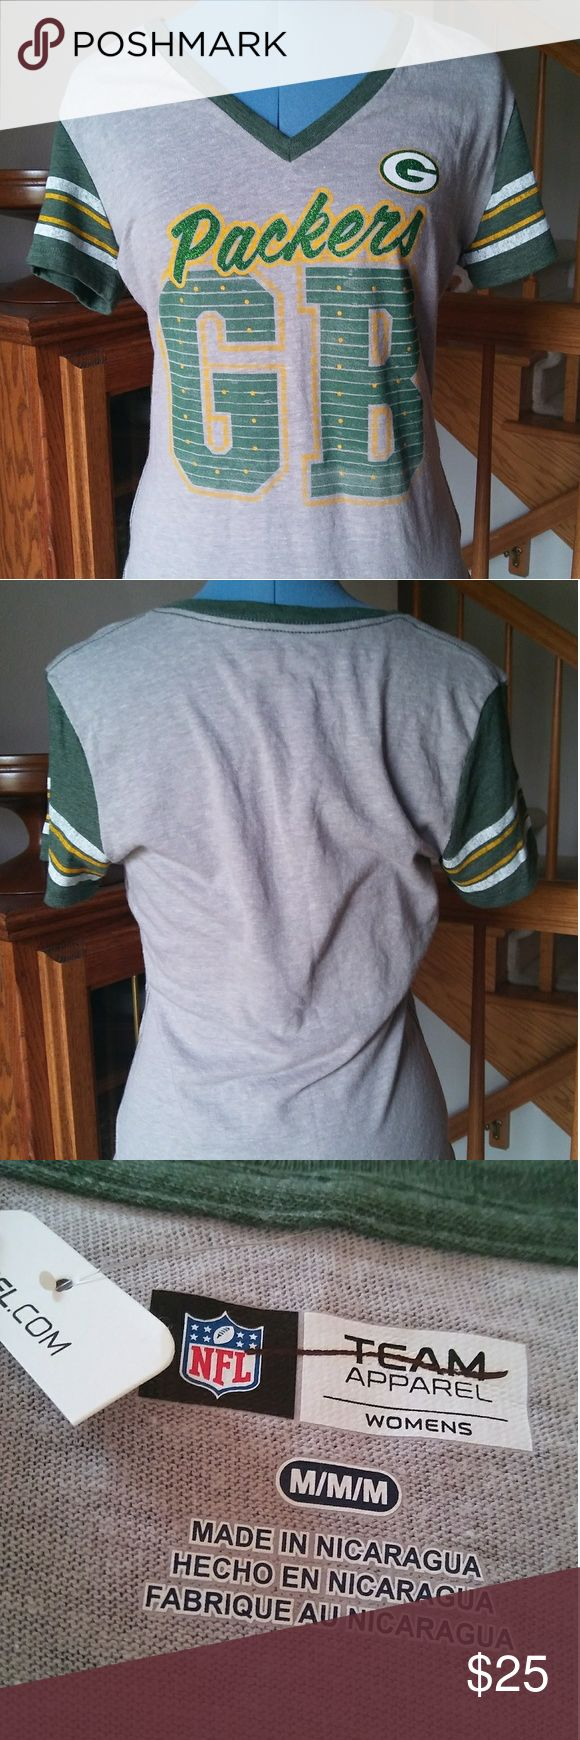 """NWT NFL Green Bay Packers Glitter Tee Cute Packers tee perfect for the upcoming football season. """"Packers"""" is written across this shirt in green glitter. Partial tag still attached. Never worn. NFL Tops Tees - Short Sleeve"""